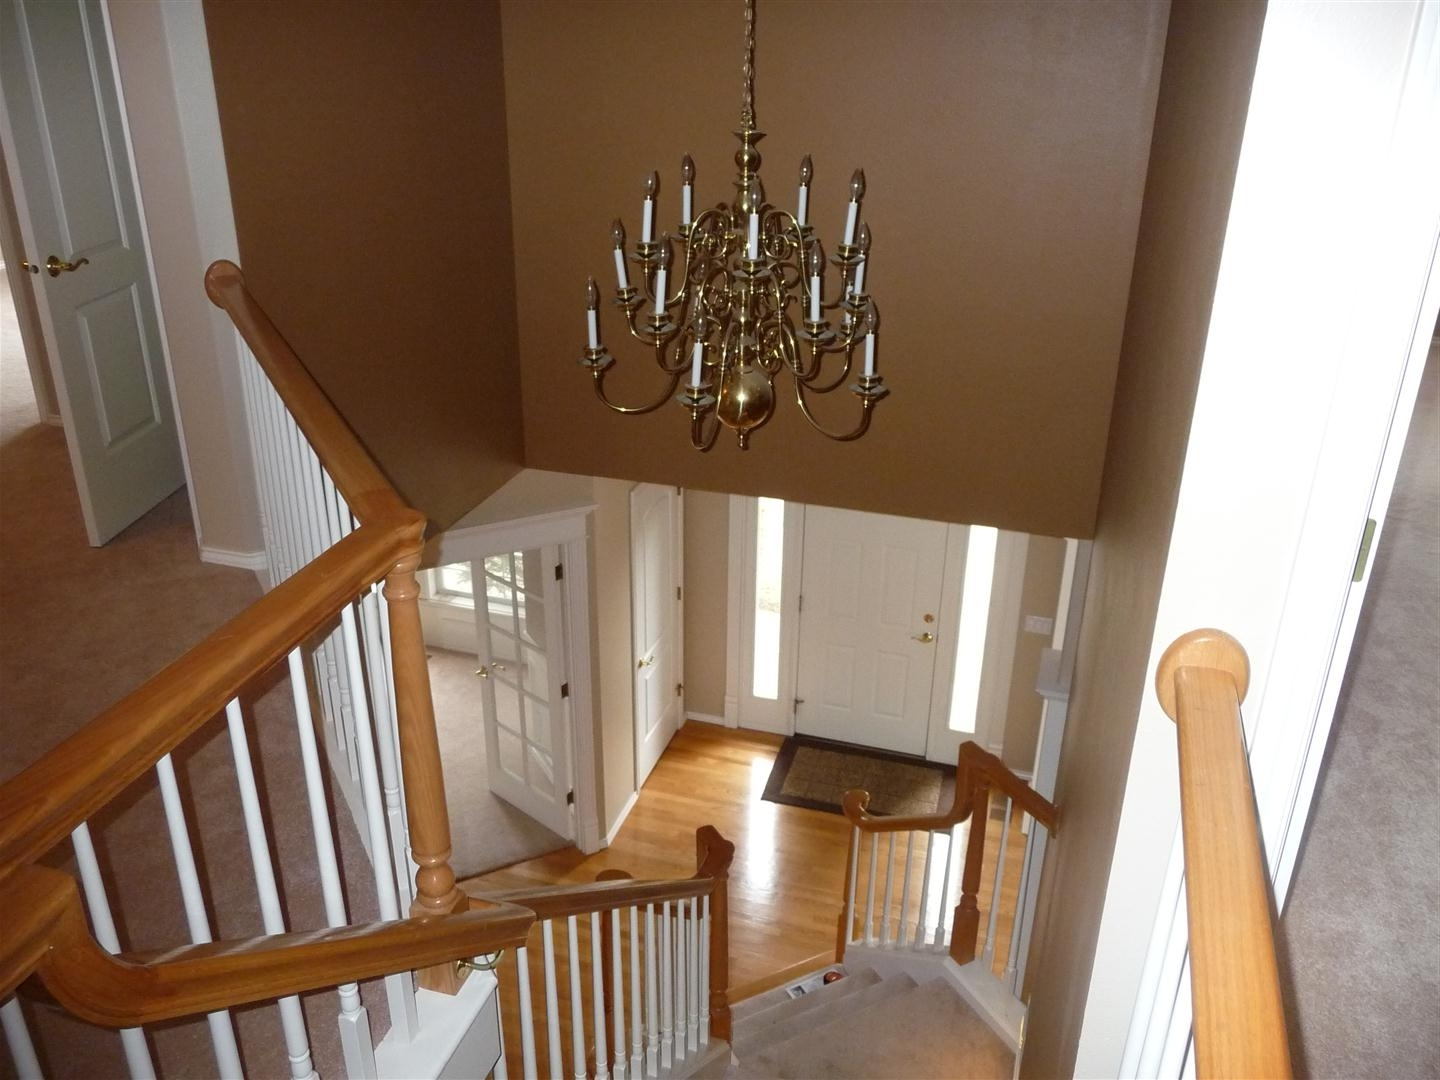 Trendy Replacing Chandelier – Entry Is 2 Stories Tall (Phone, Painting For Stairway Chandeliers (View 15 of 15)